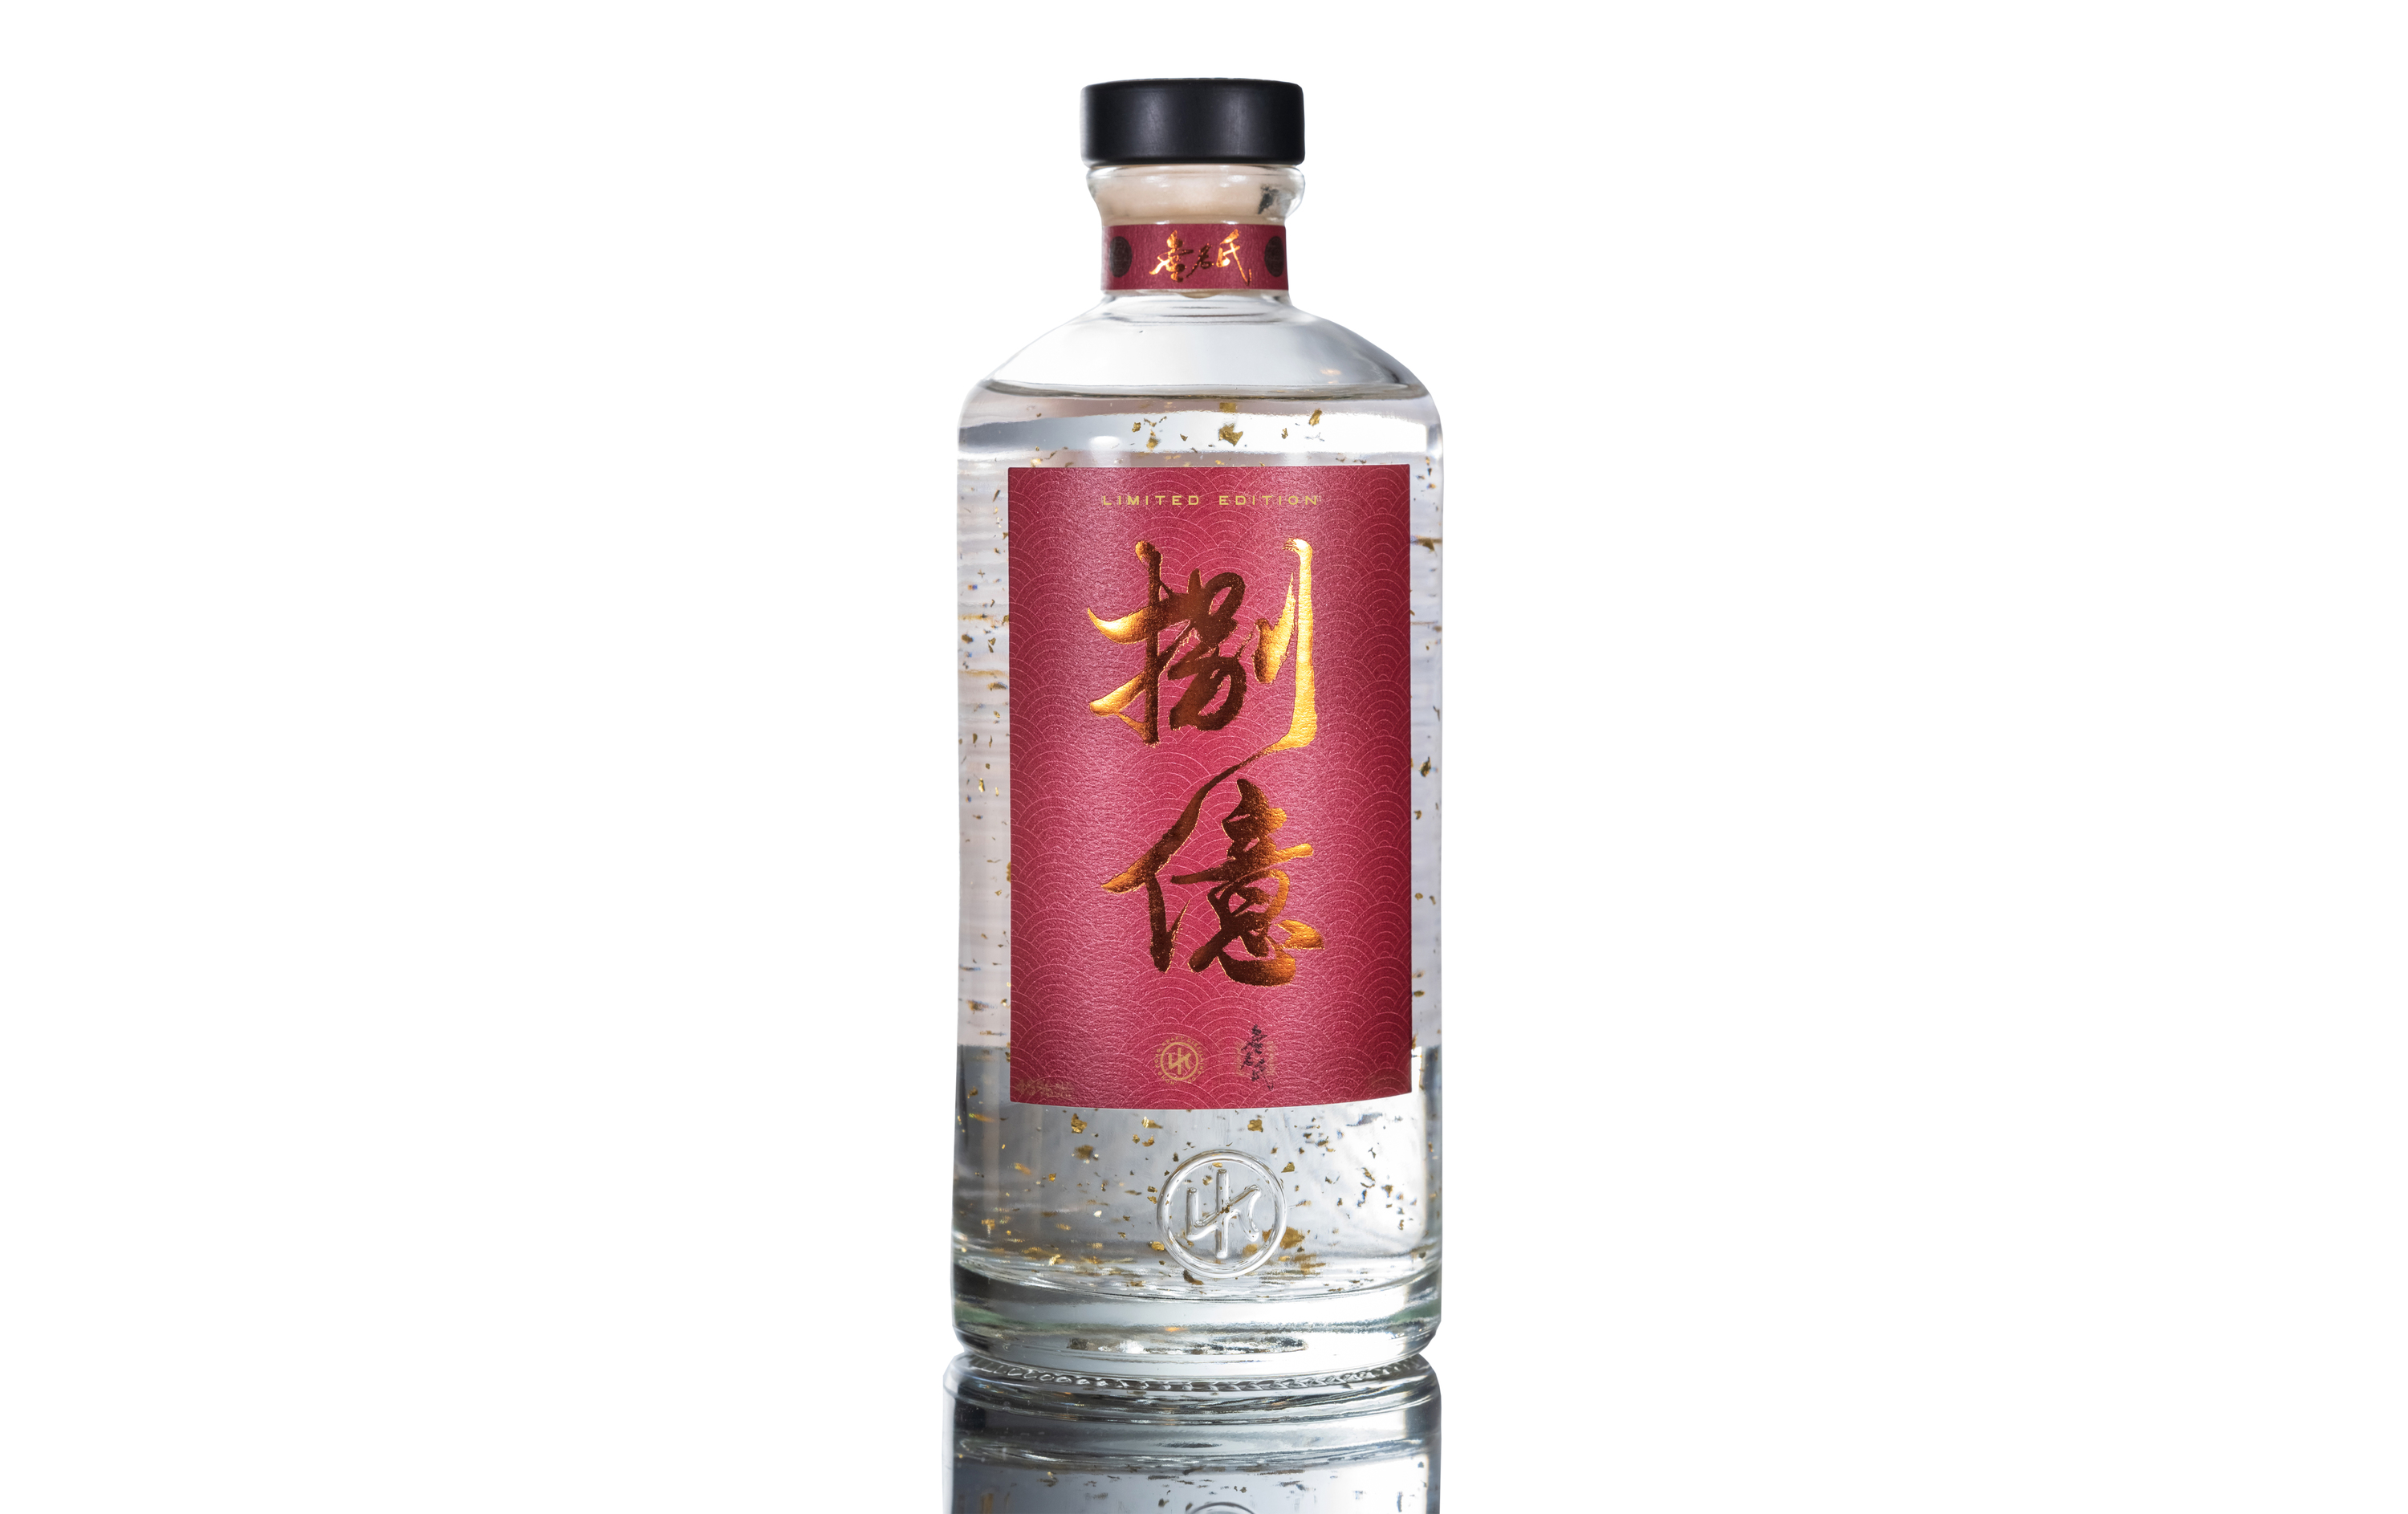 Hong Kong's N.I.P craft distillery releases a limited-edition CNY gin